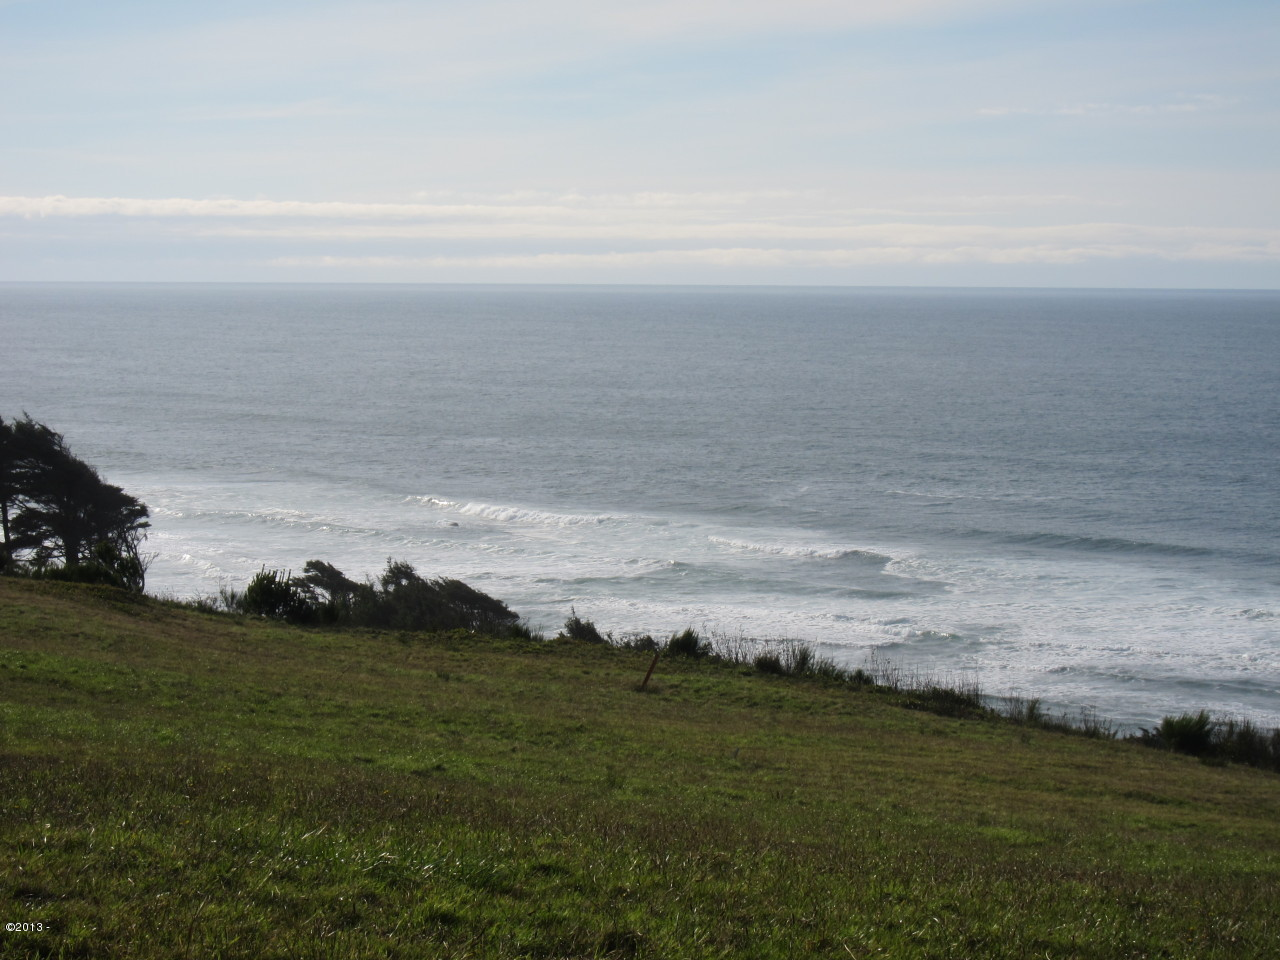 LOT 29 Seavista Lane, Pacific City, OR 97135 - ocean breathtaking